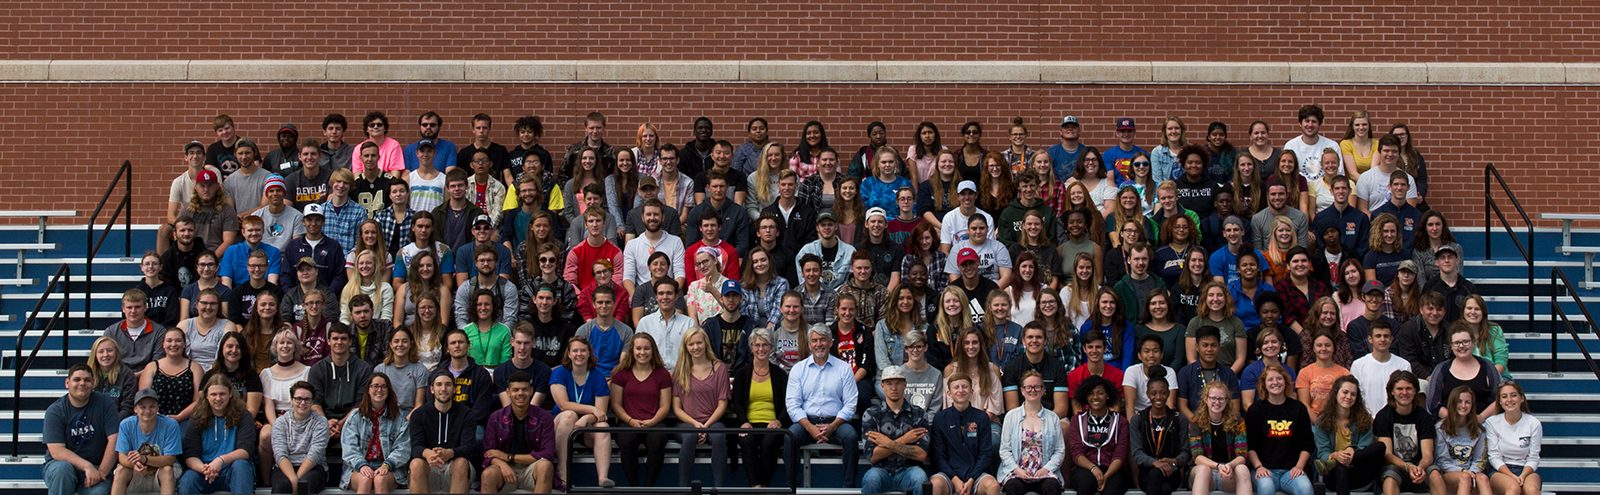 The Northland College Class of 2021 sits with President Miller for a class photo